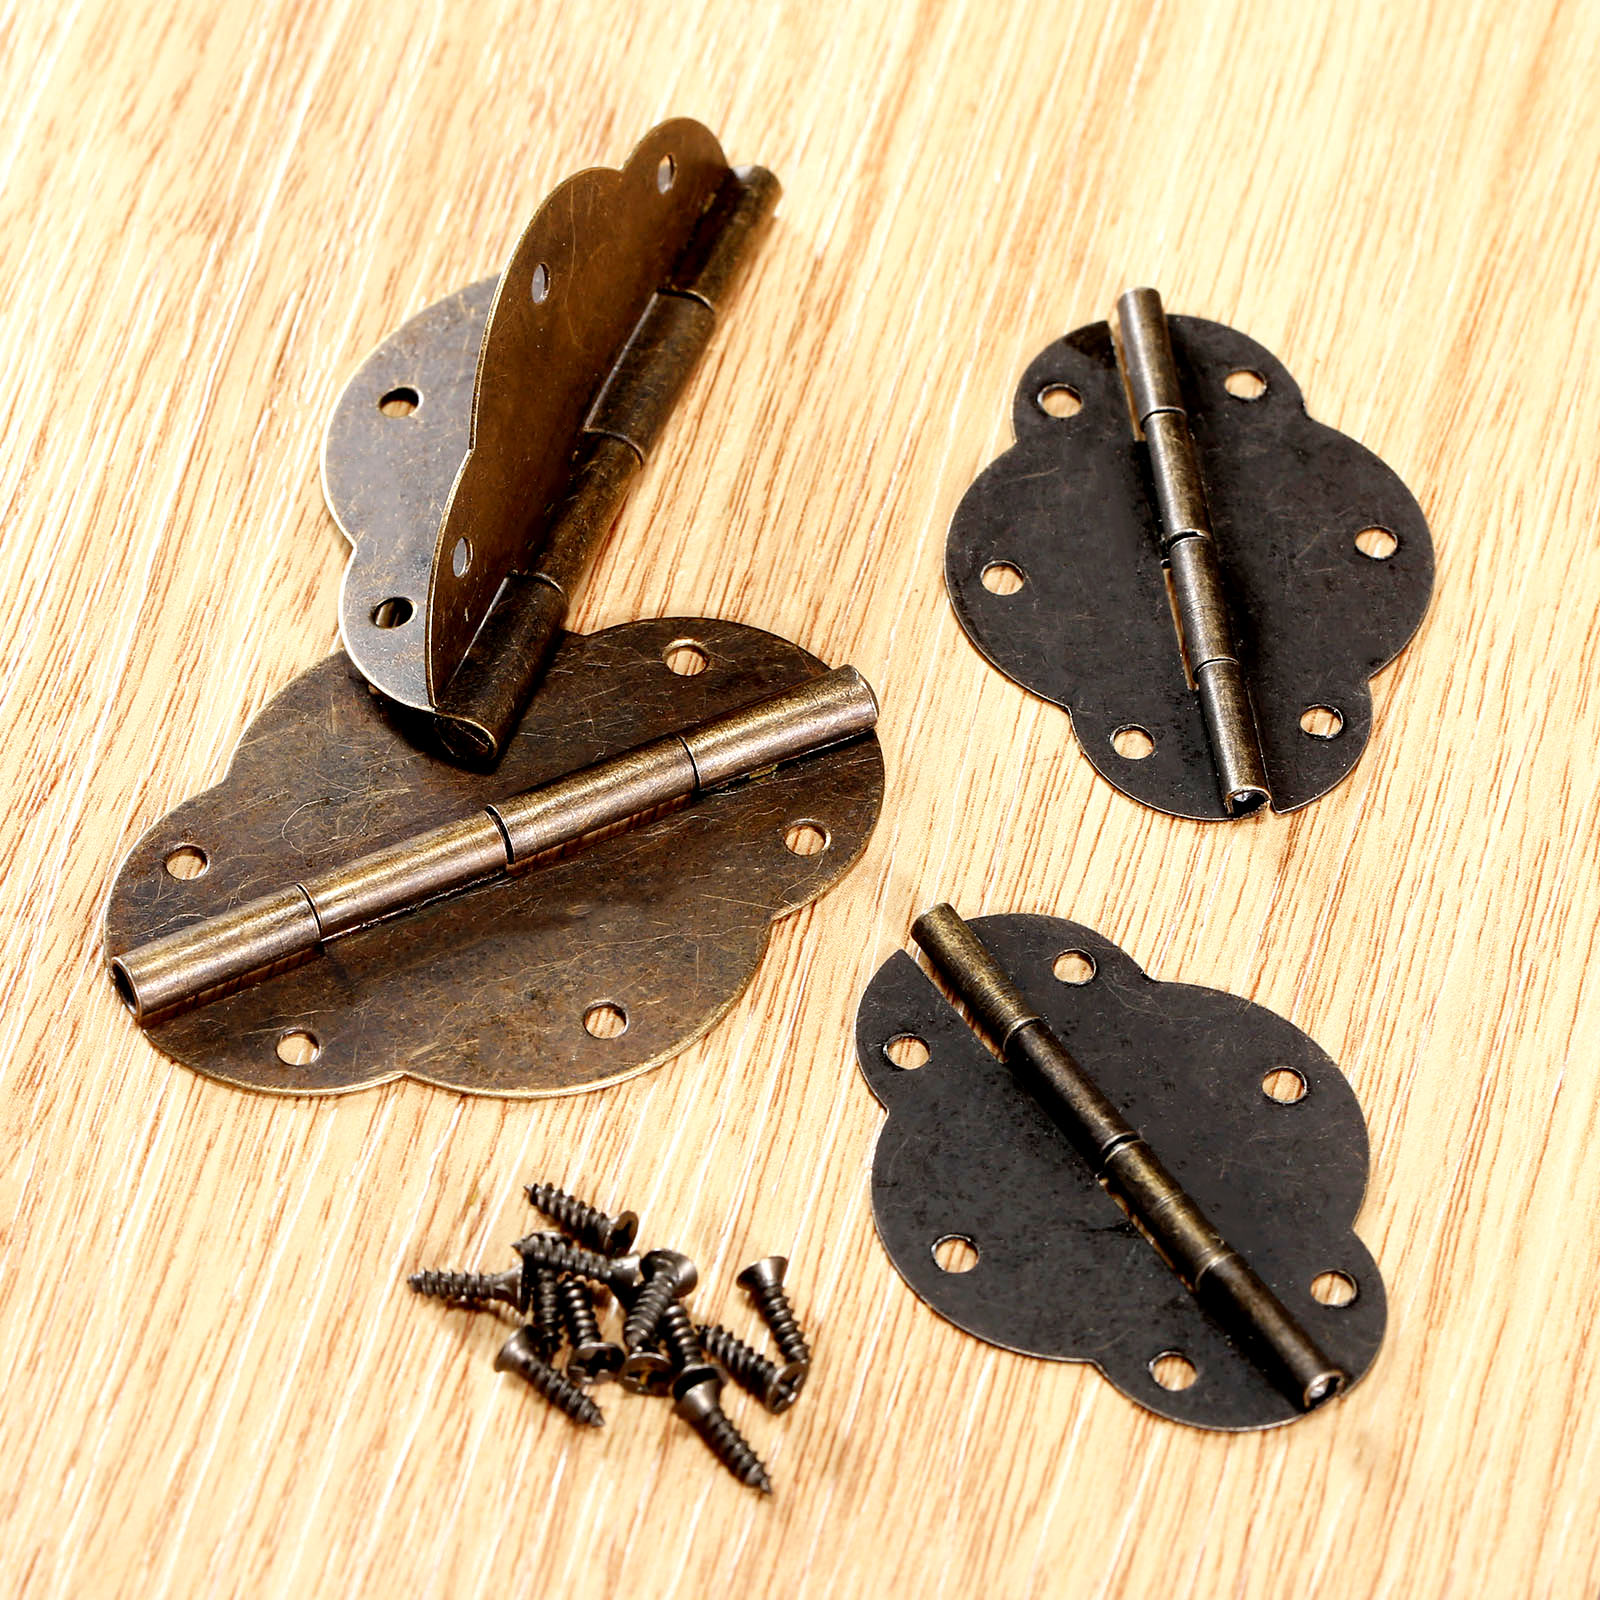 2Pcs Antique Bronze Cabinet Hinges Door Butt Hinge Furniture Accessories Wood Box Hinges Fittings For Furniture +Screws(China (Mainland))